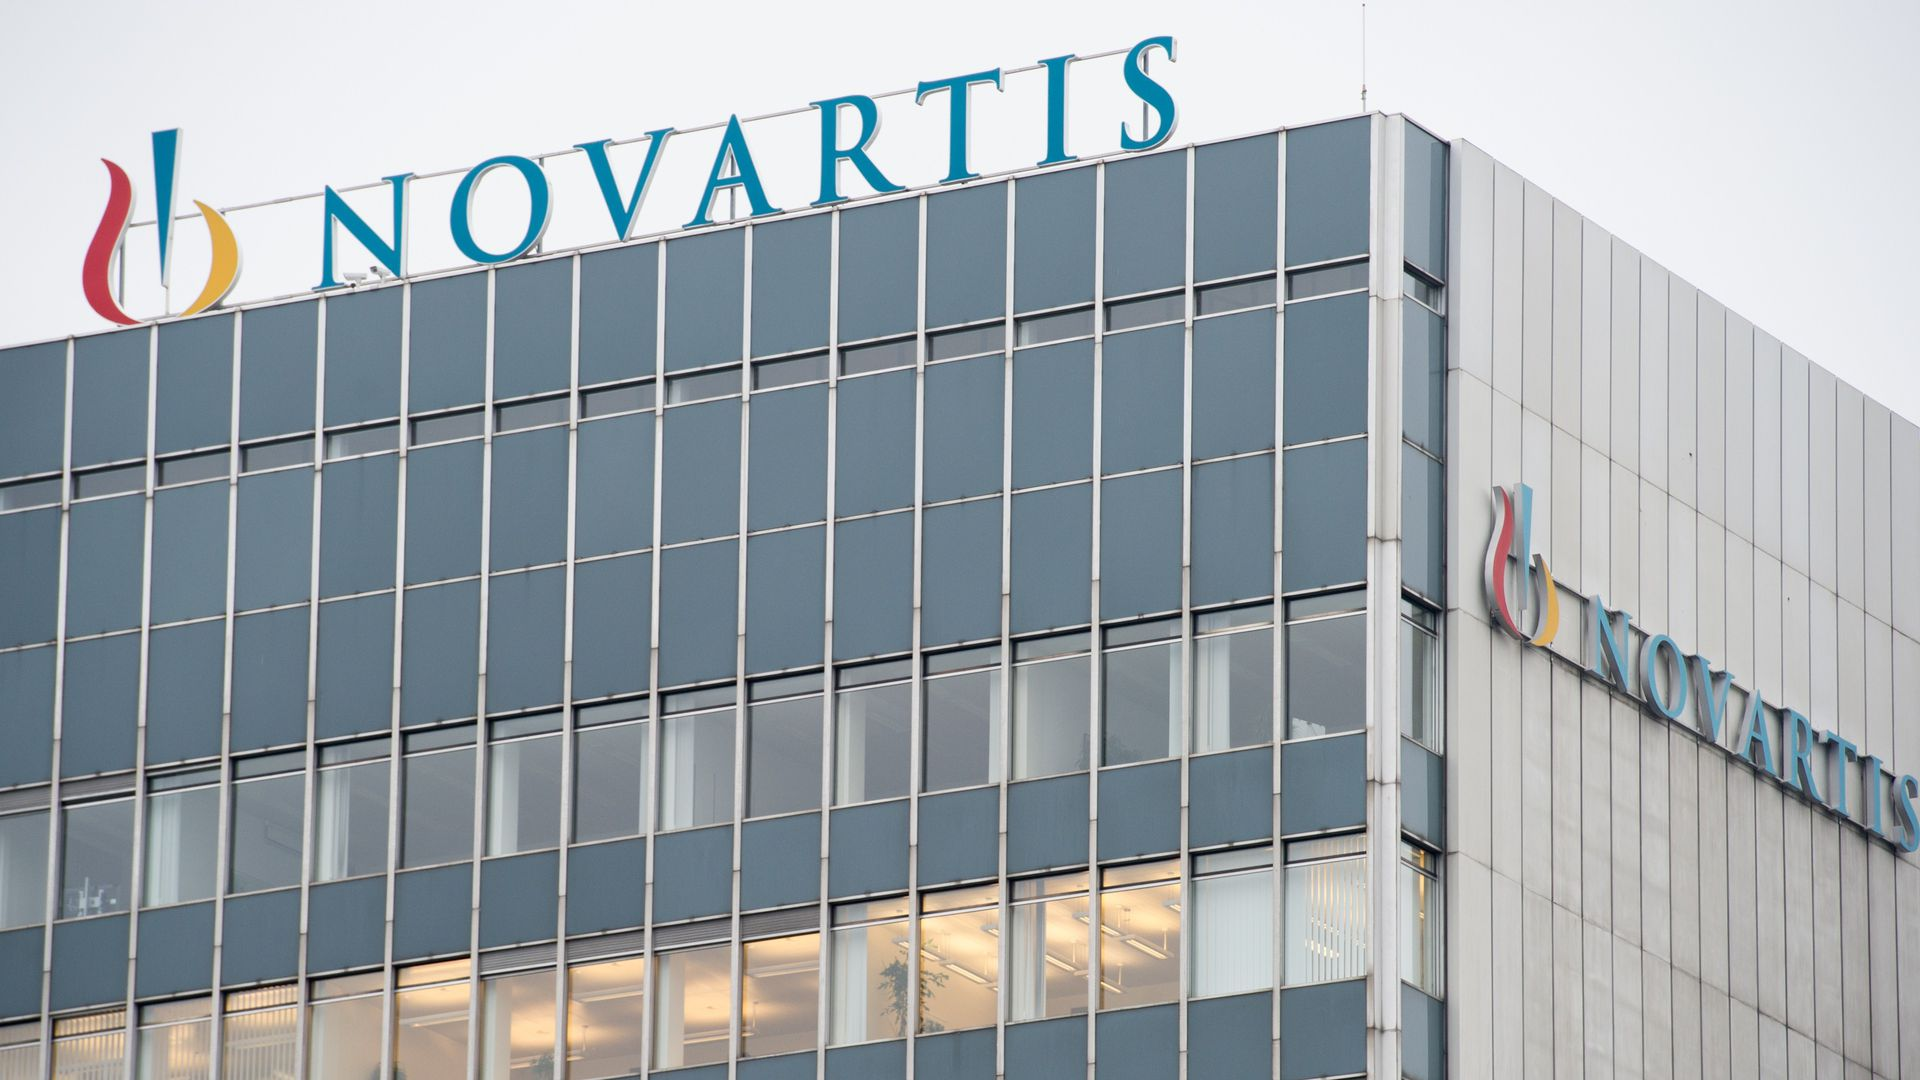 Swiss headquarters Novartis